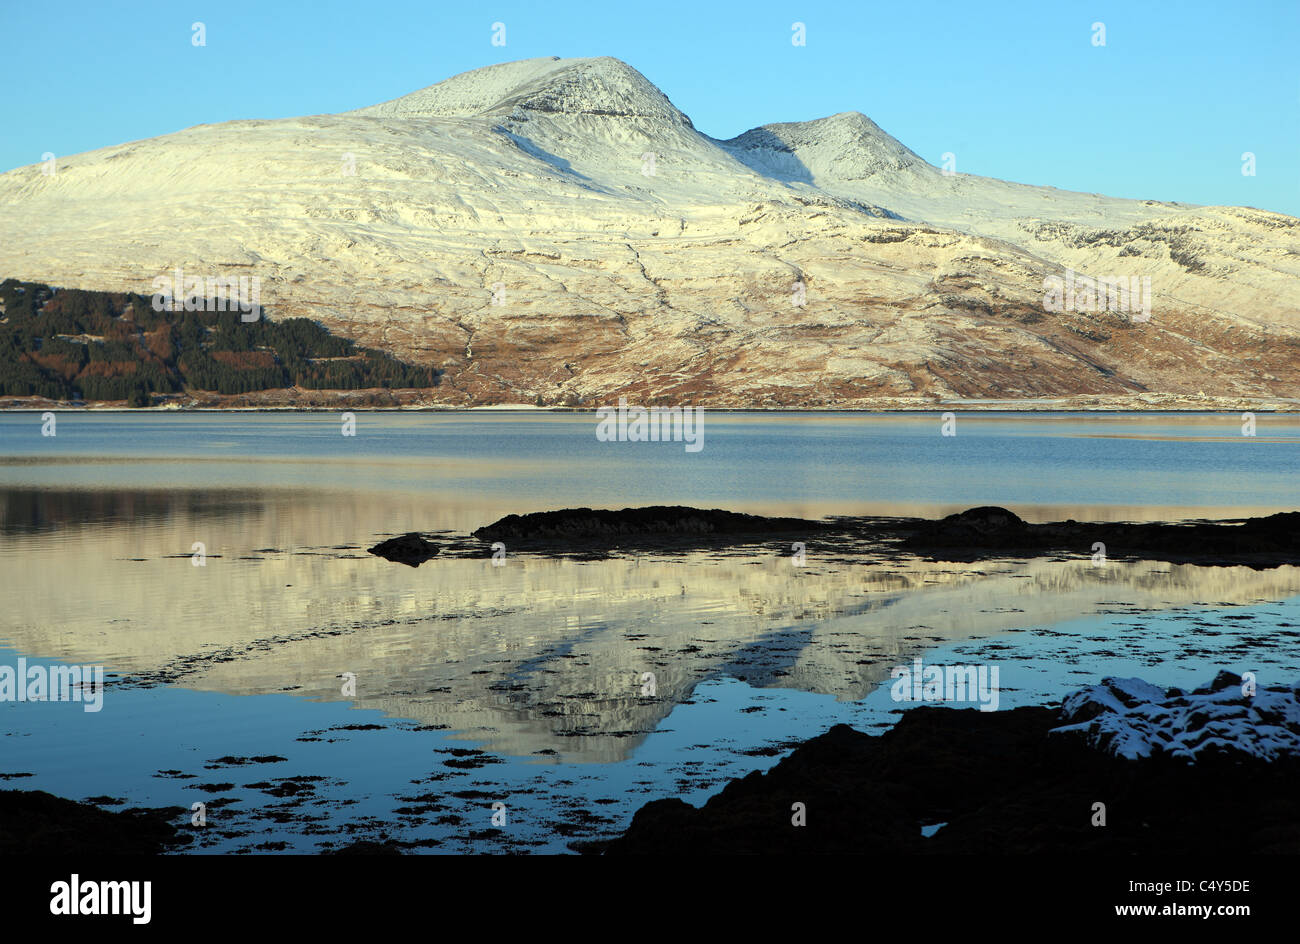 Reflection of Ben More and A'Chioch covered in snow in Loch Scridain on the Isle of Mull - Stock Image